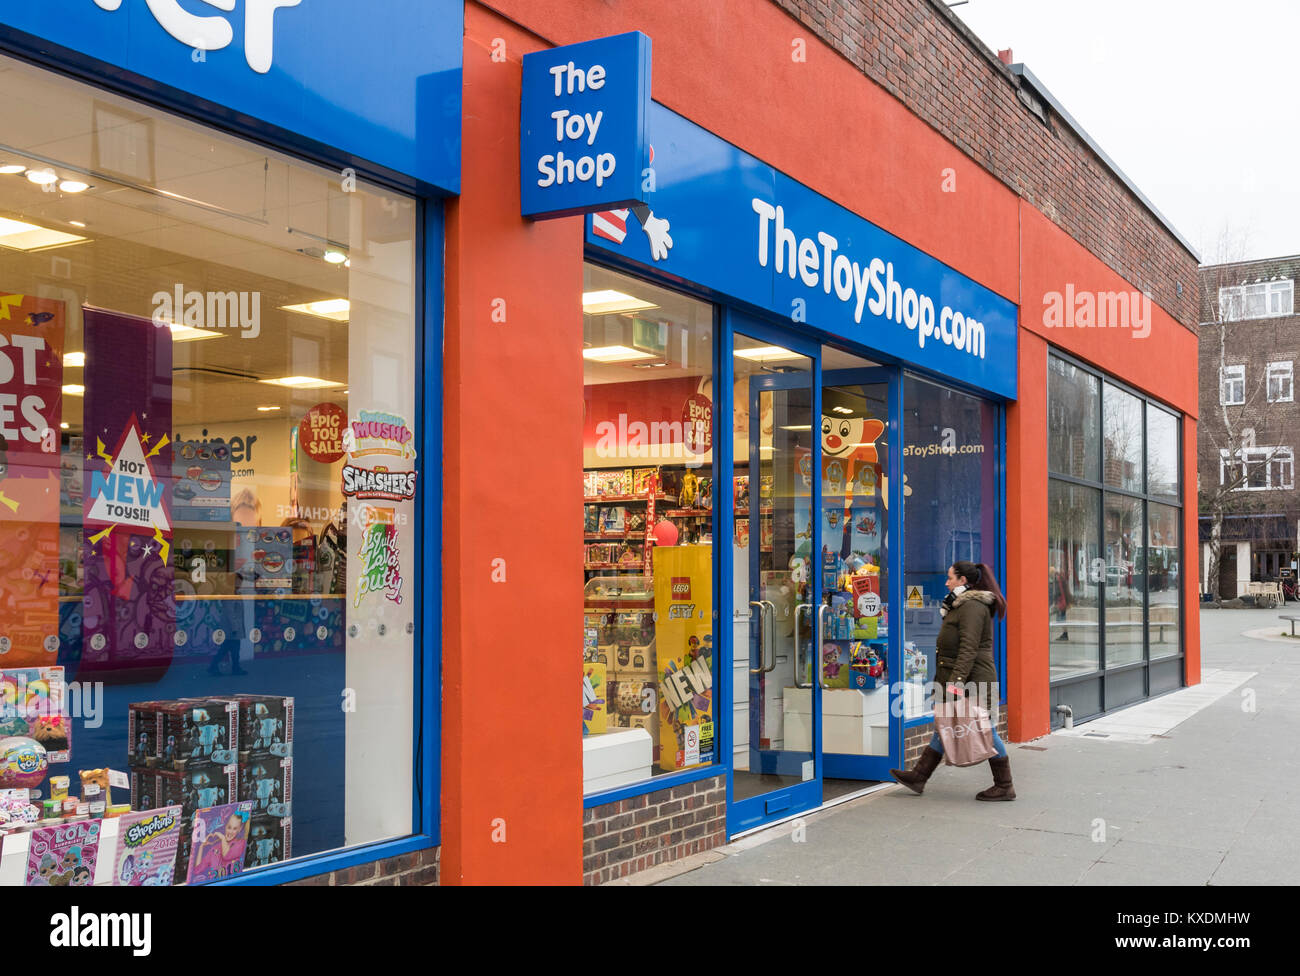 The Toy Shop front entrance in Horsham, West Sussex, England, UK. Retail store. - Stock Image